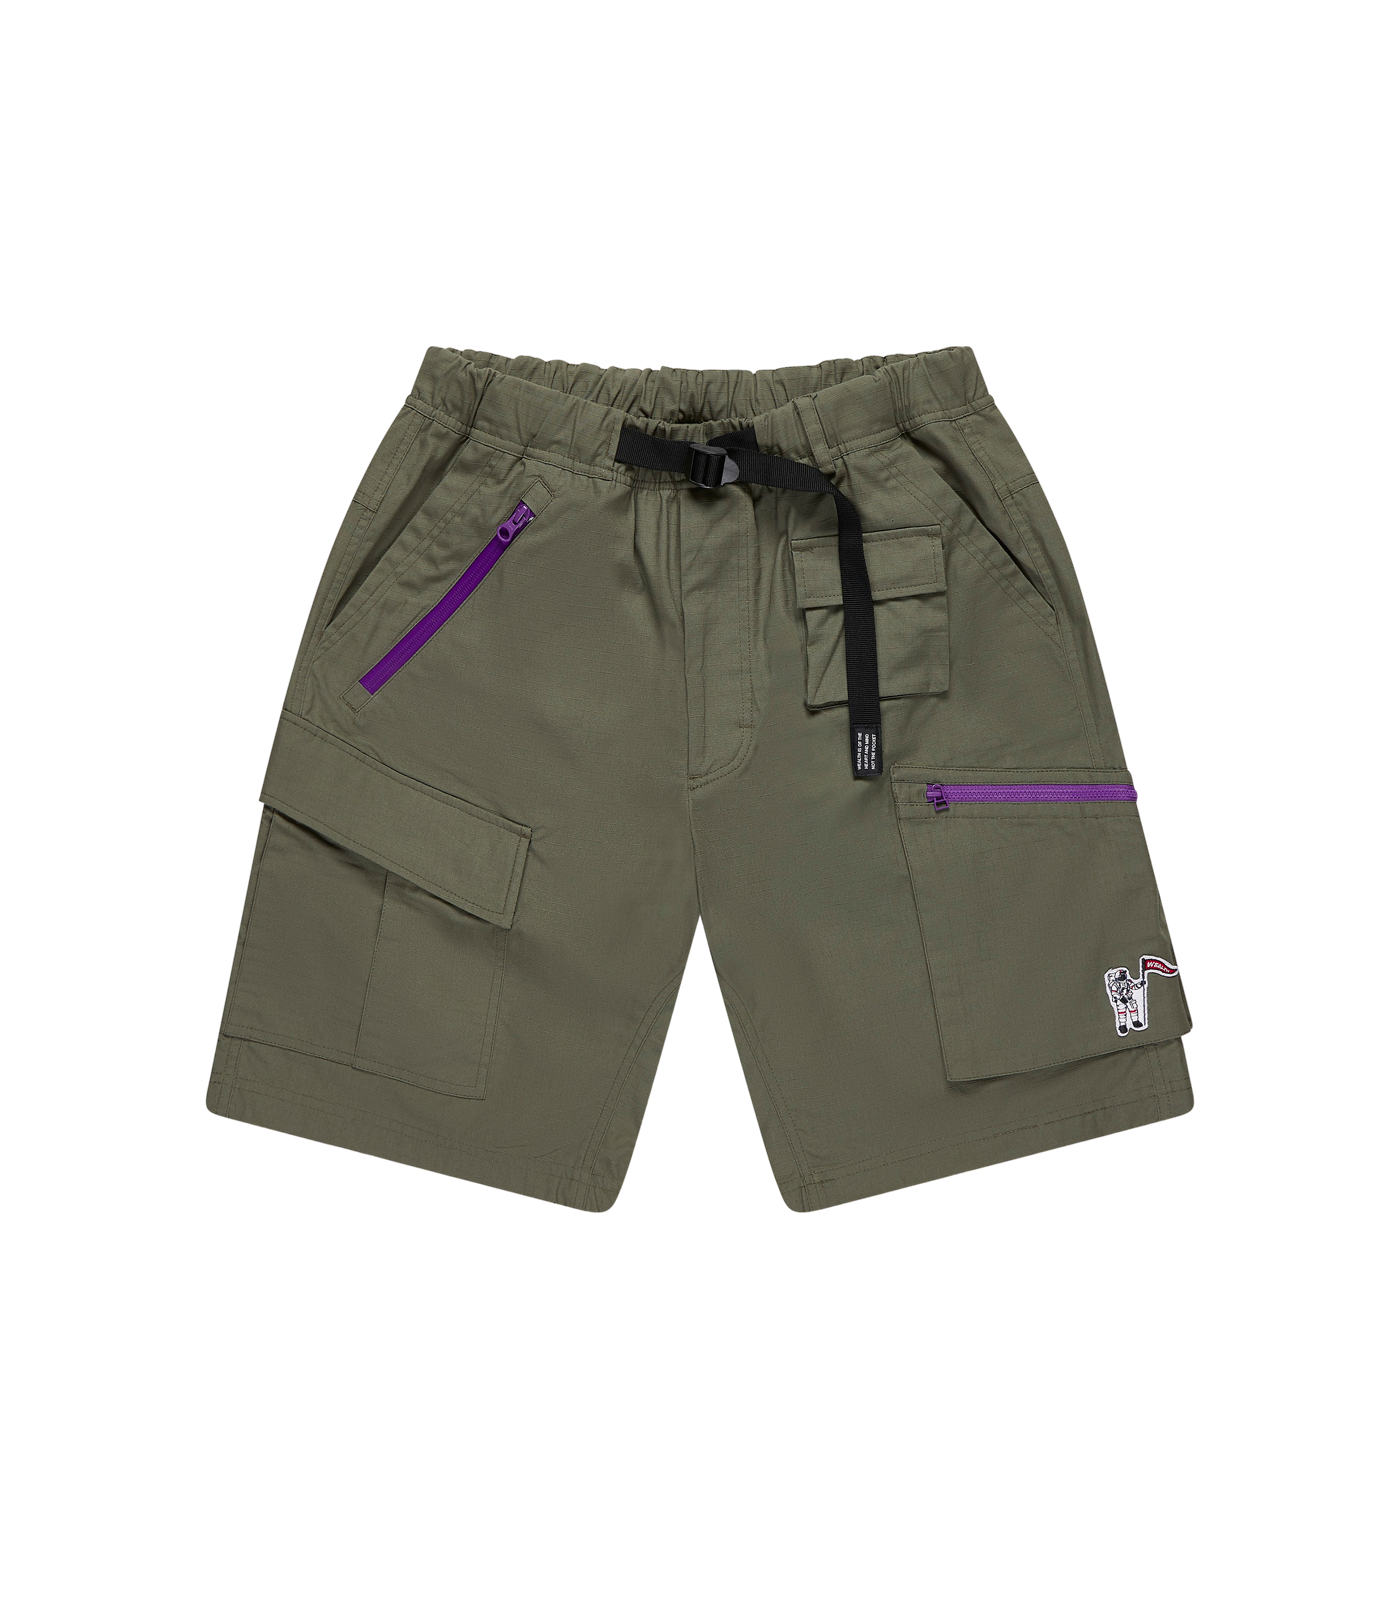 MULTI POCKET CLIMBING SHORTS - KHAKI